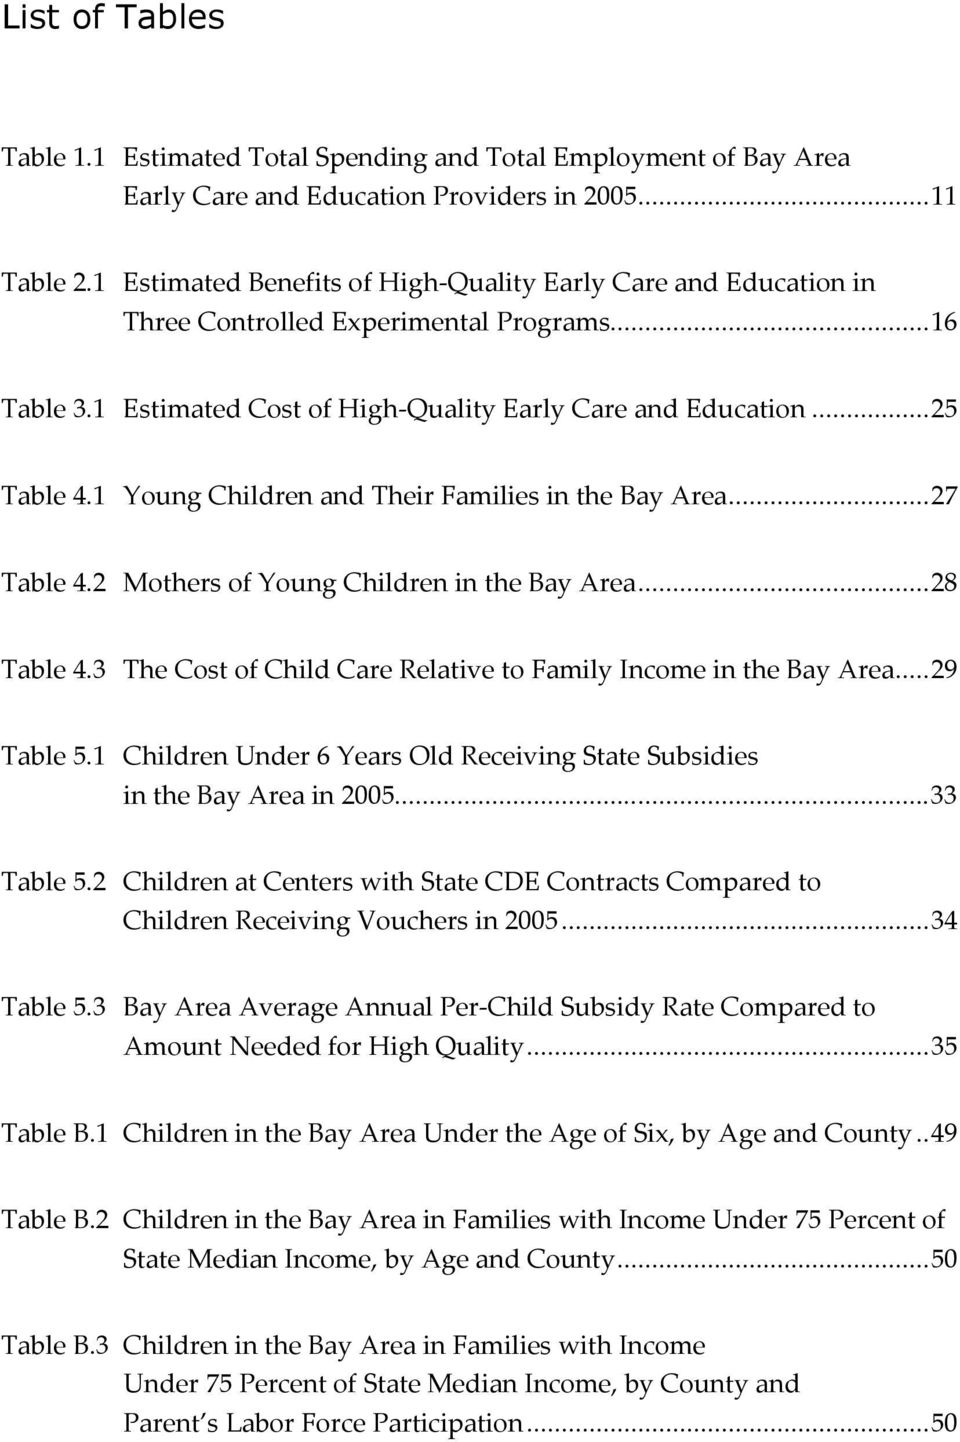 1 Young Children and Their Families in the Bay Area...27 Table 4.2 Mothers of Young Children in the Bay Area...28 Table 4.3 The Cost of Child Care Relative to Family Income in the Bay Area...29 Table 5.